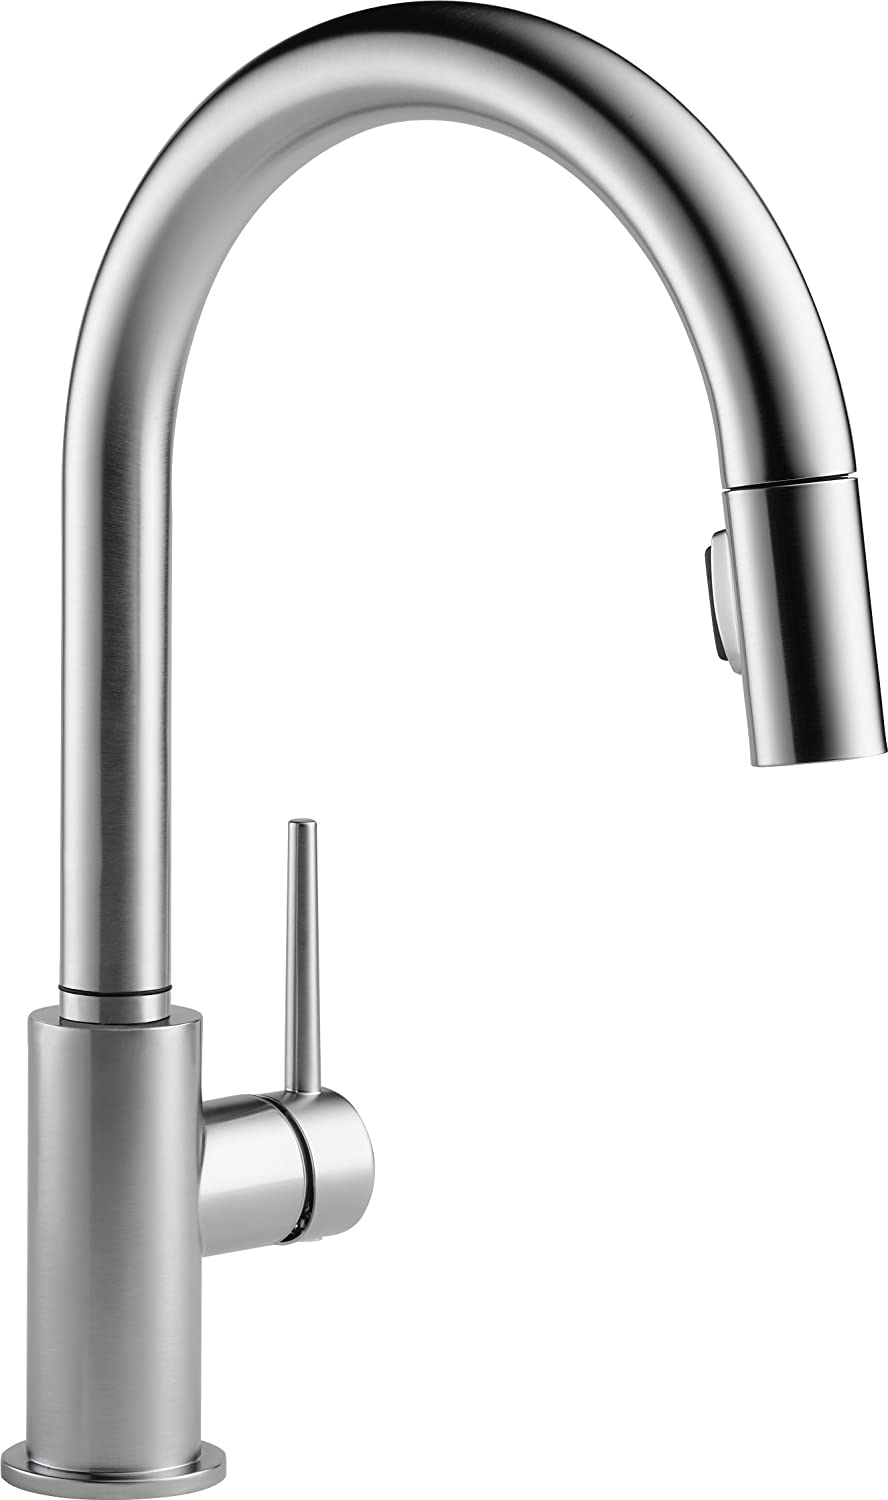 countertops faucet zodiac trinsic handle sky savile down kraus kitchen faucets of new sink pulldown delta quartz stainless pull elegant single london